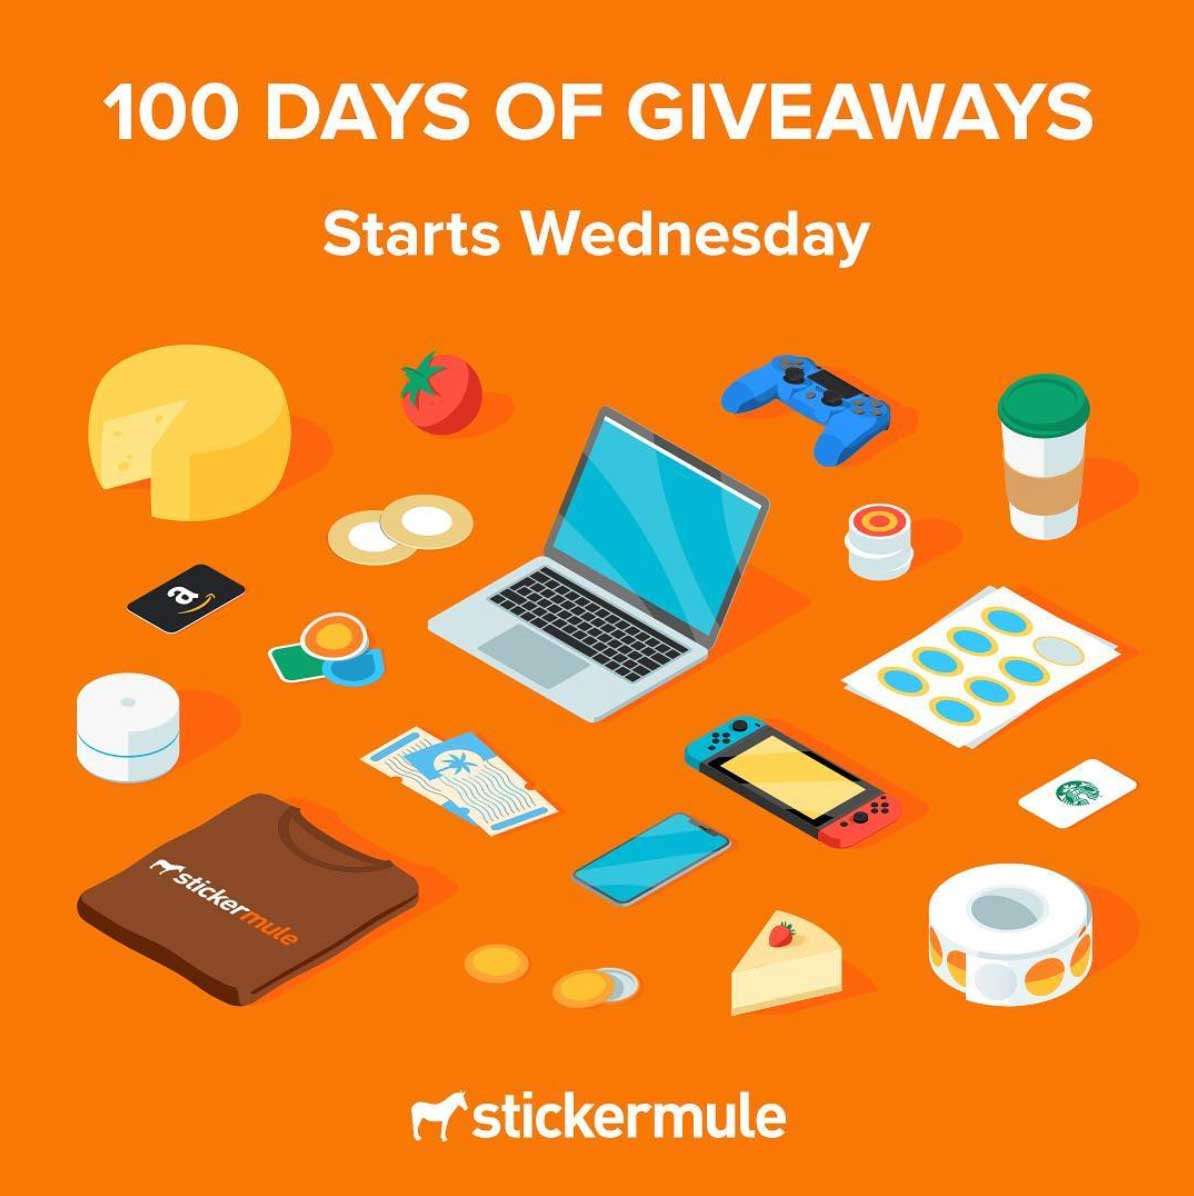 100 days of giveaways graphic